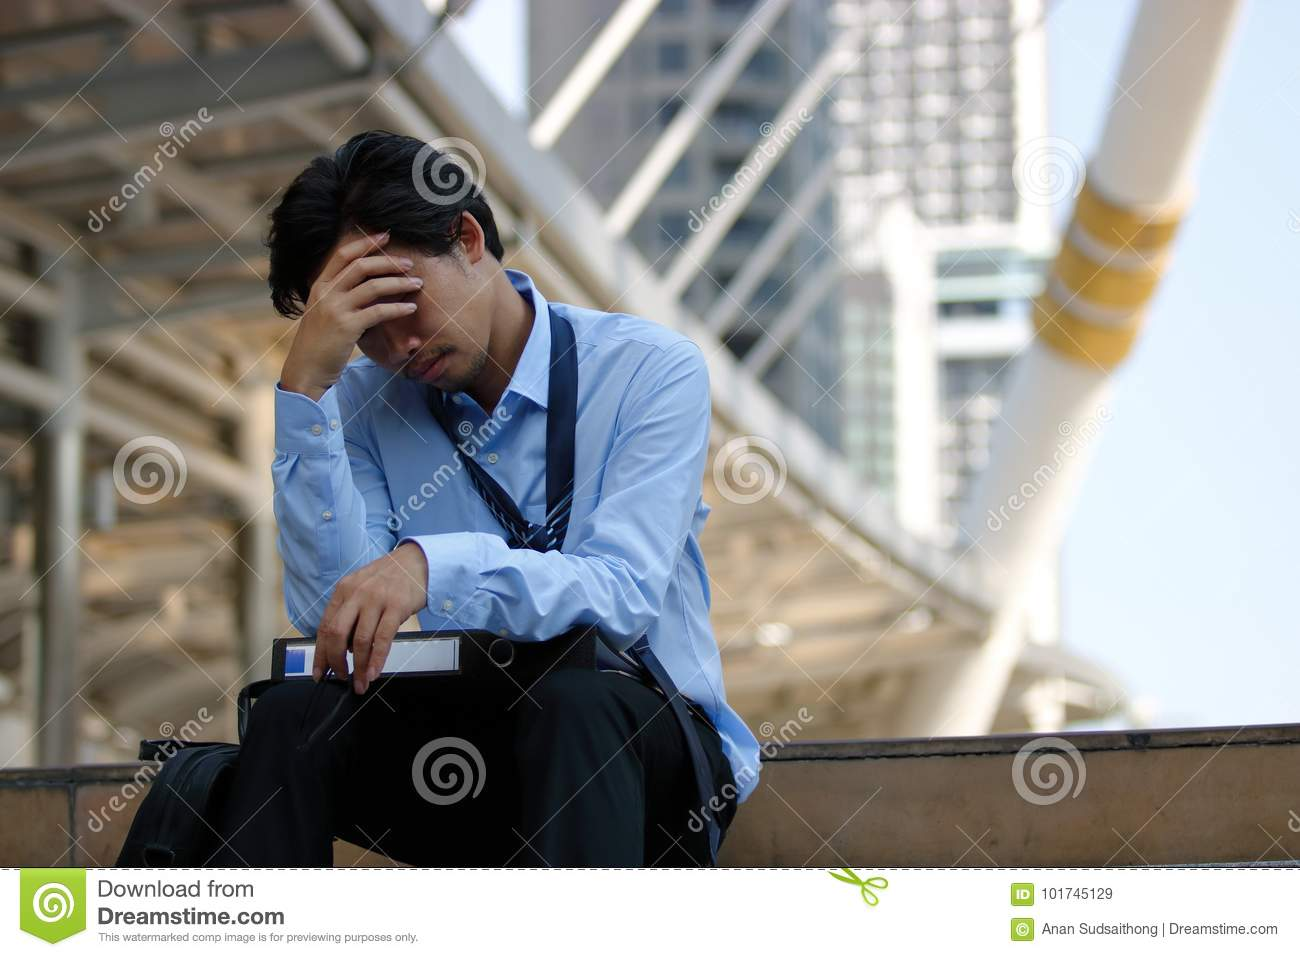 Frustrated stressed Asian businessman with hand on forehead sitting on staircase in the city. Depressed unemployment business conc